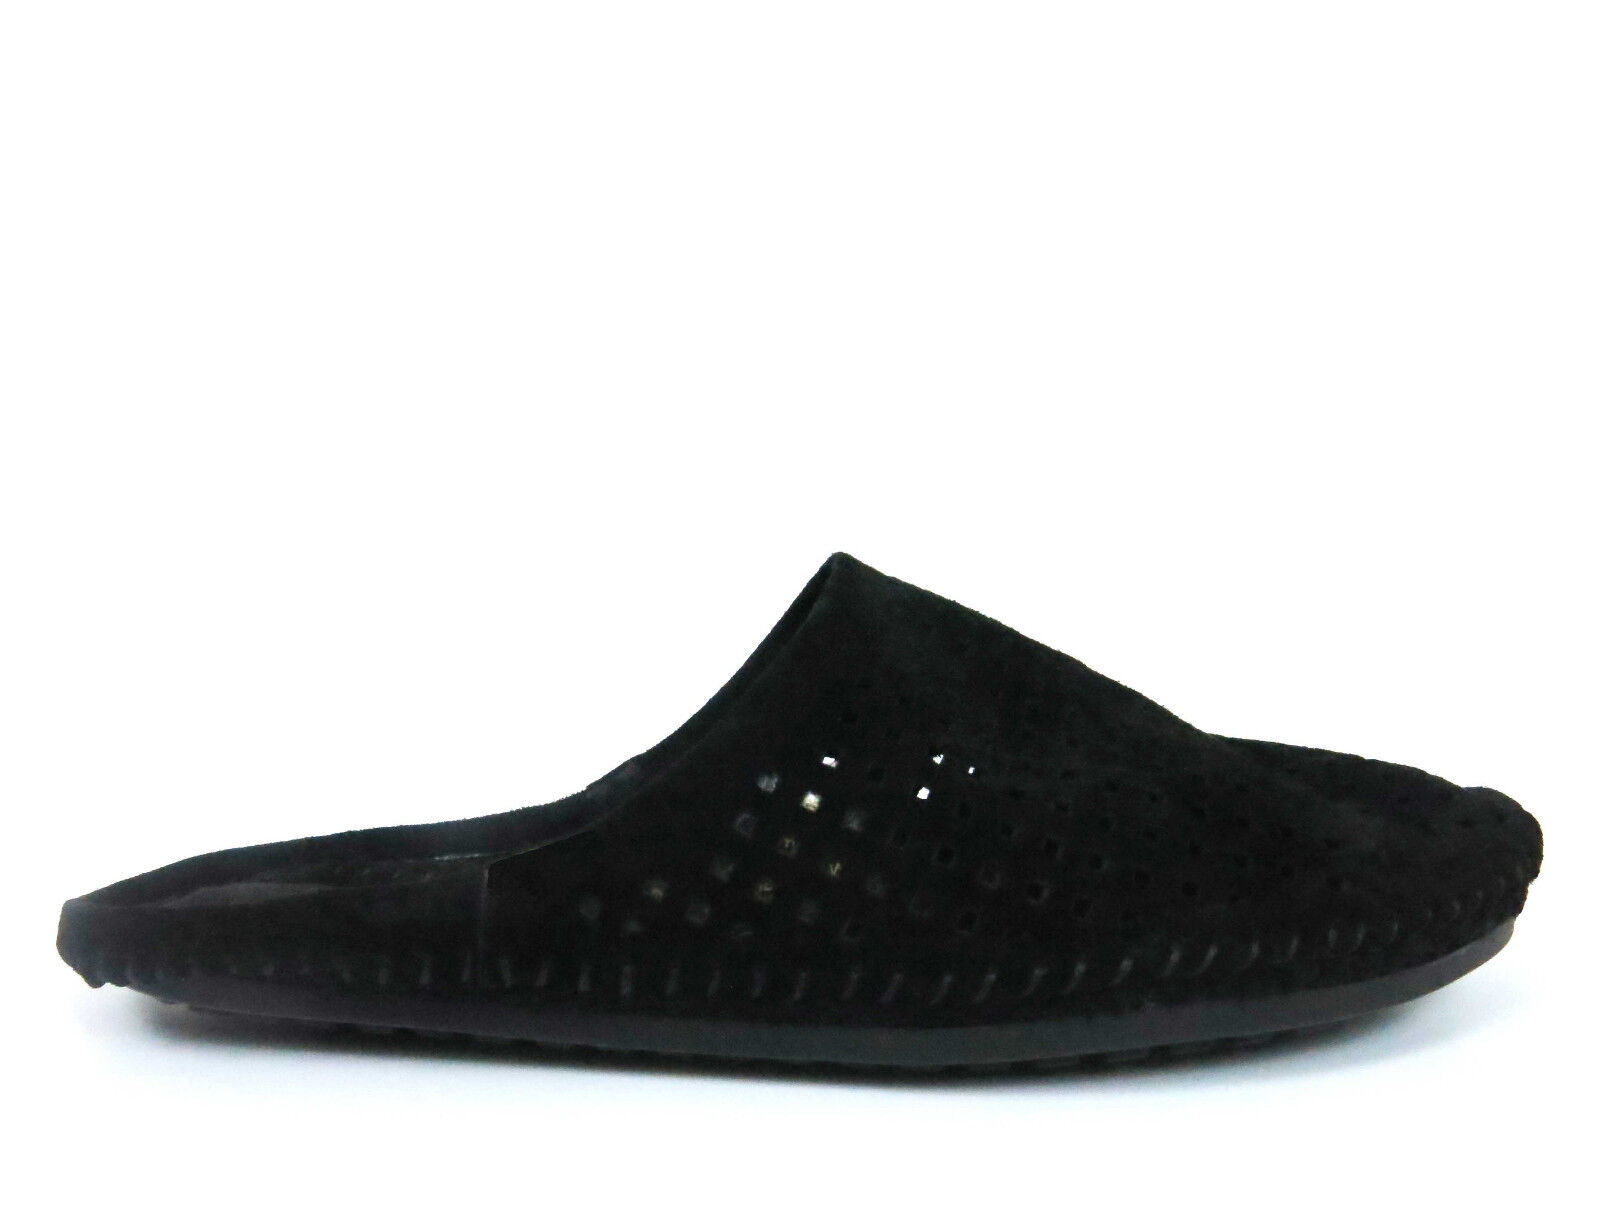 BCBGeneration Women's Slides Slip-On Perforated Suede Leather Black 6